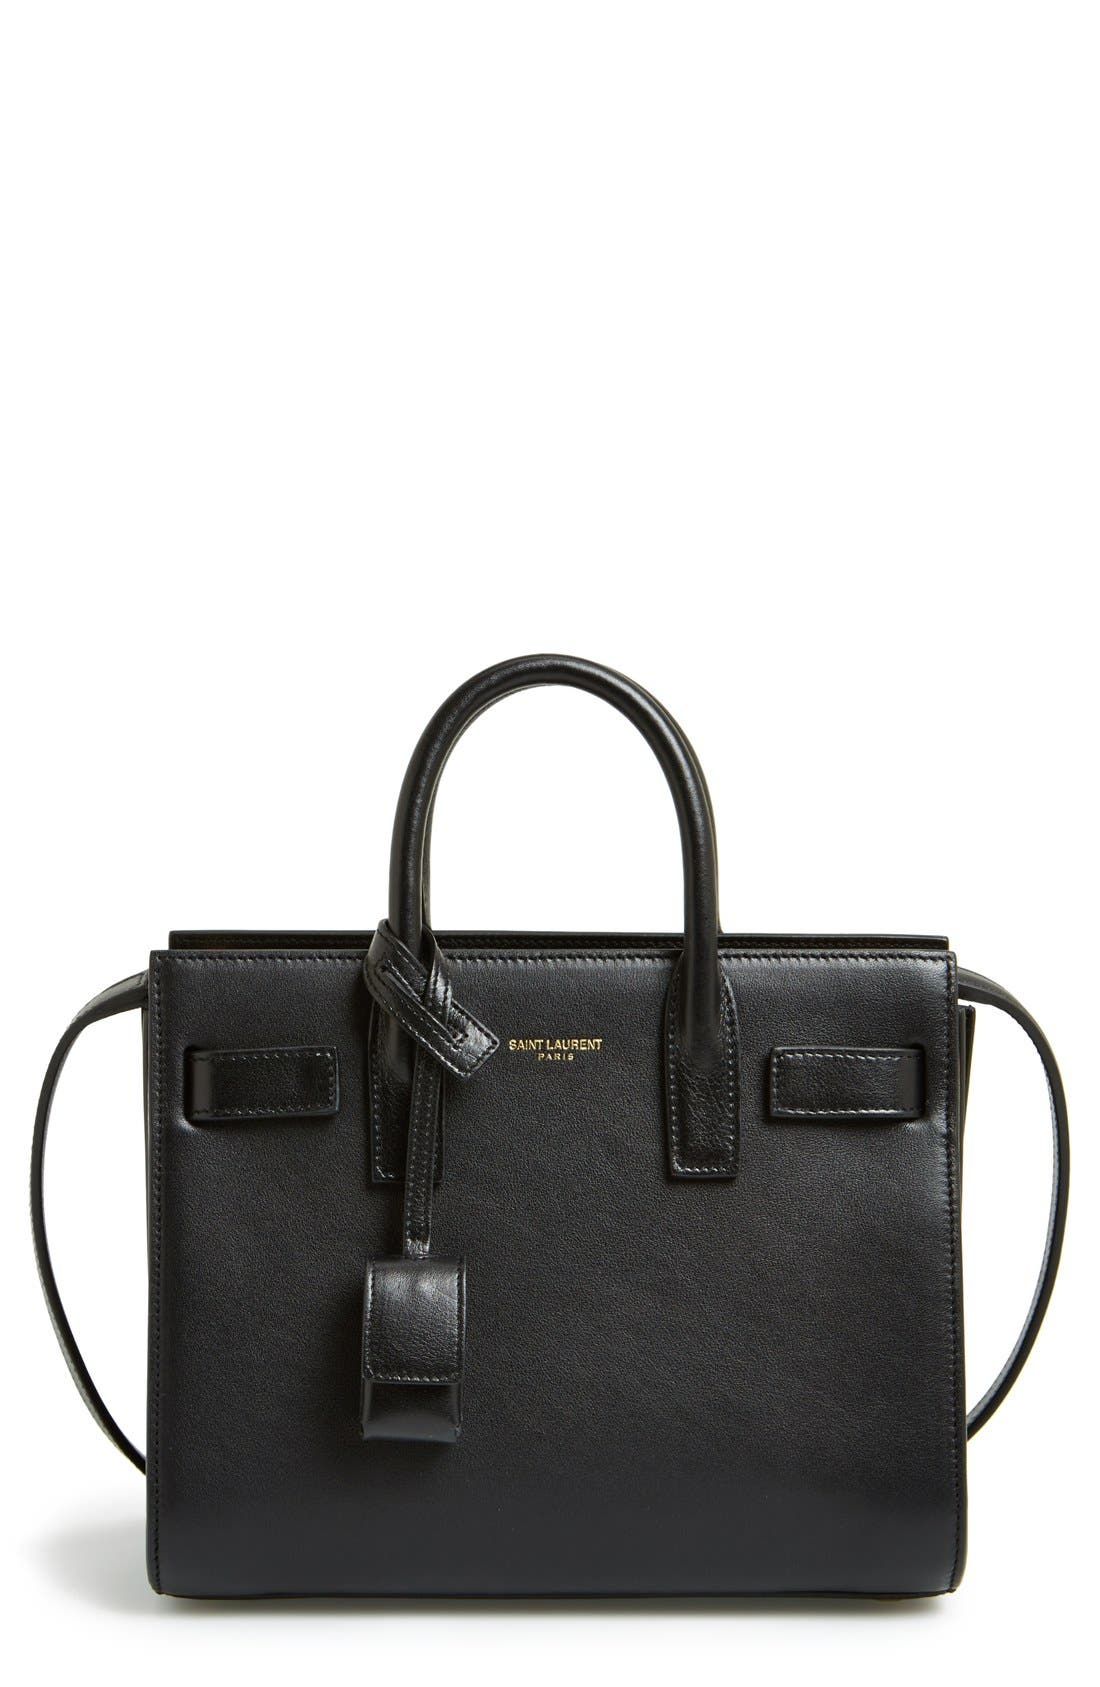 Alternate Image 1 Selected - Saint Laurent 'Micro Sac de Jour' Leather Tote